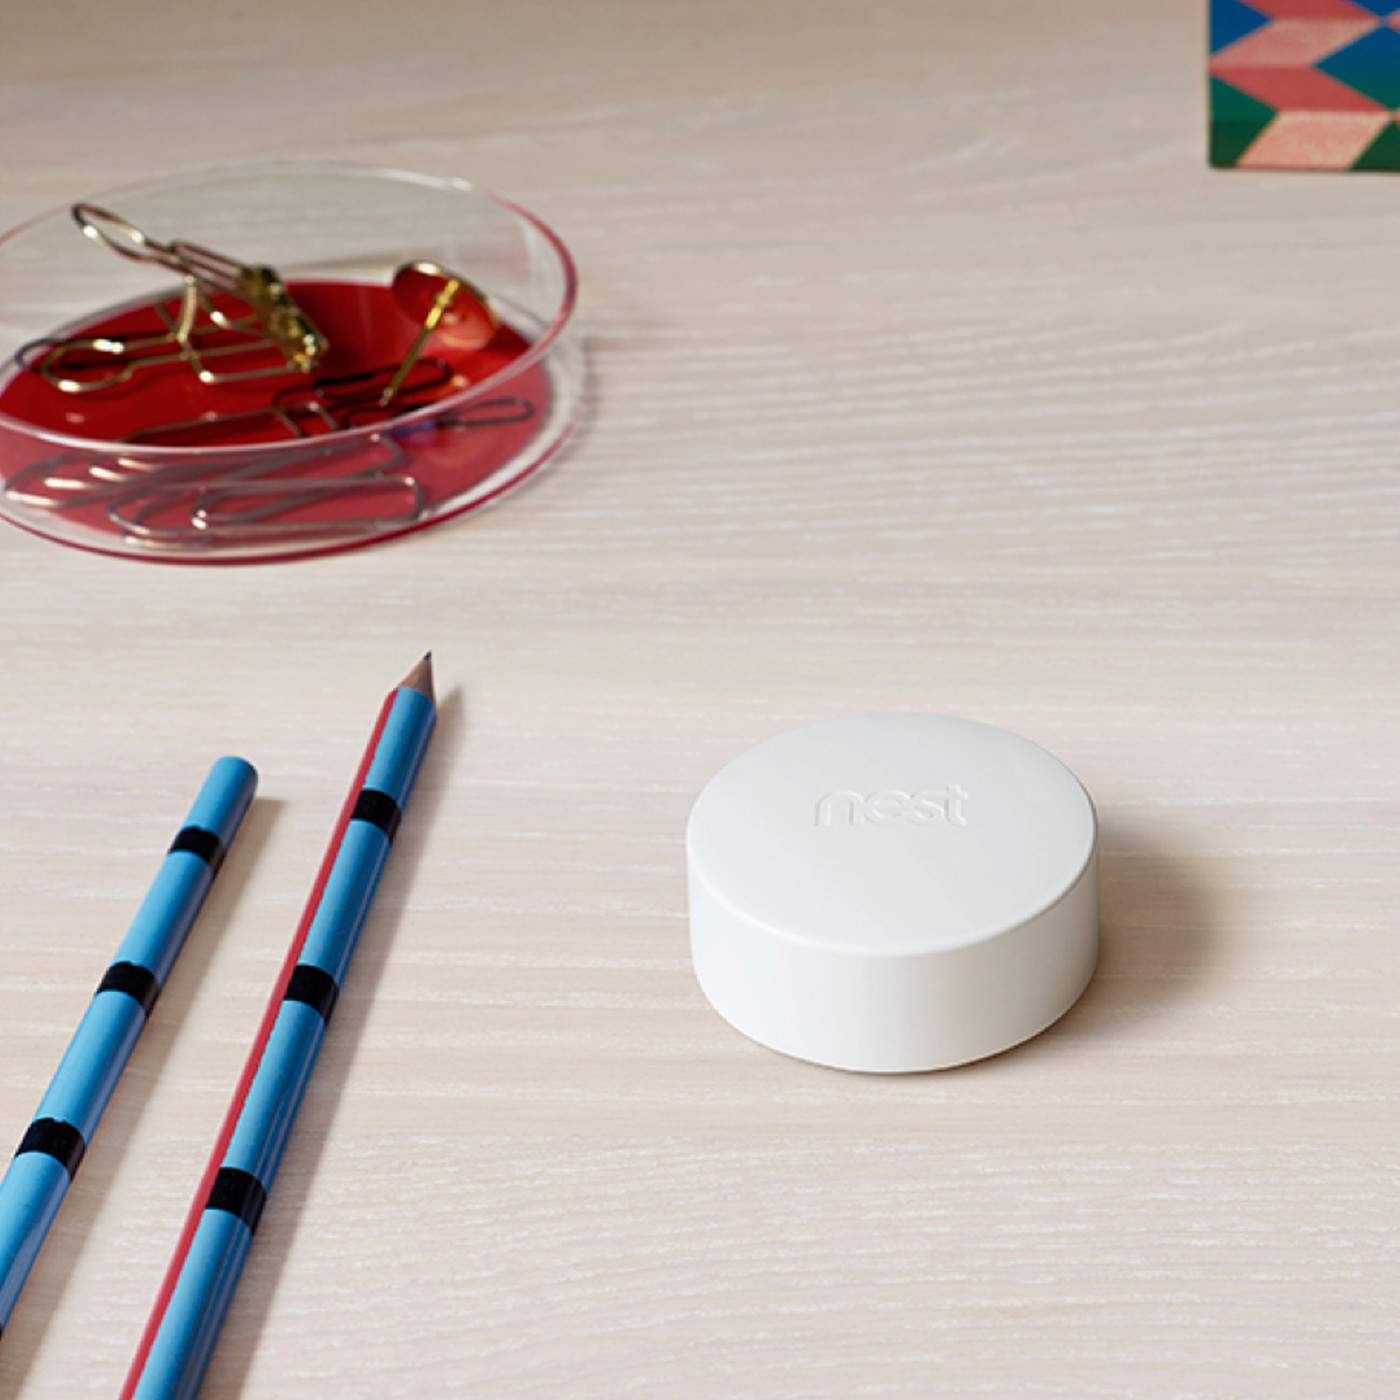 Nest launches $39 temperature sensor and is now shipping video